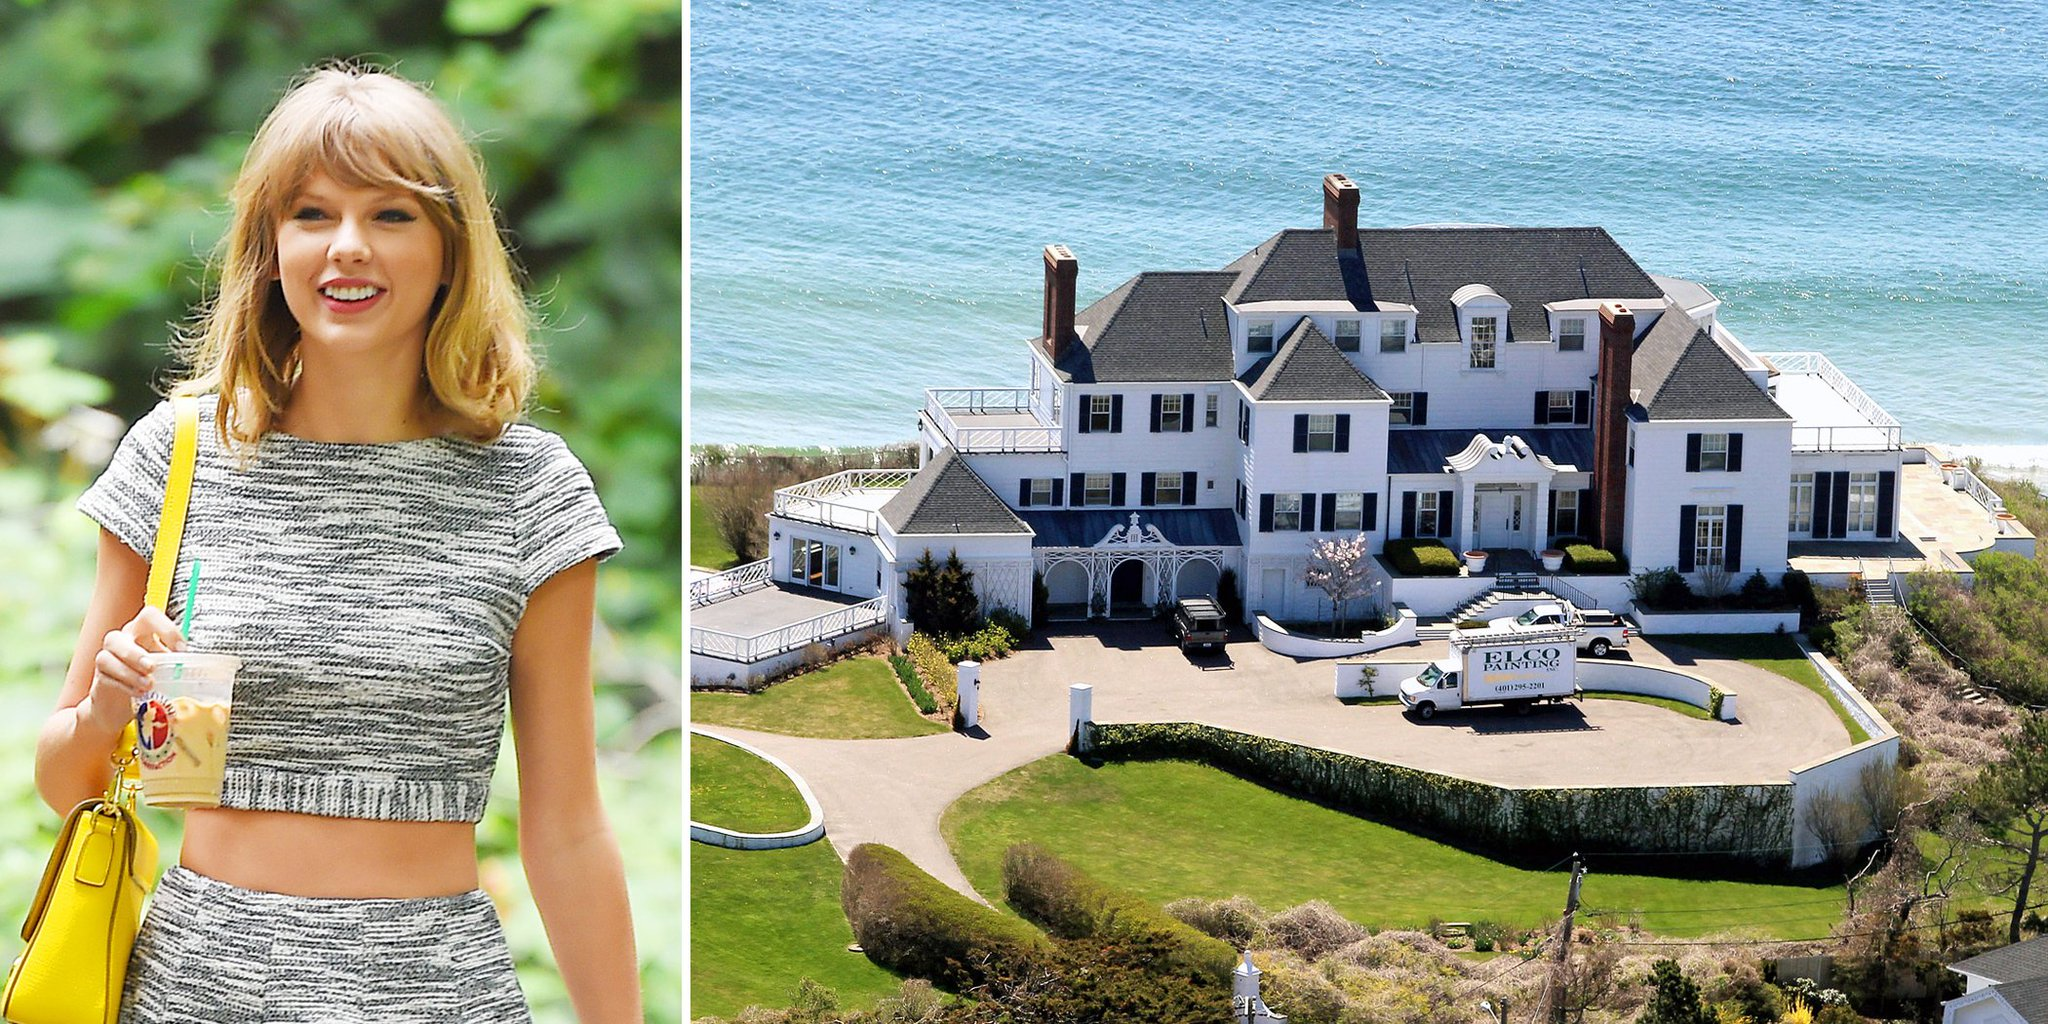 10 *Crazy* Things You Didn't Know About @TaylorSwift13's Rhode Island Mansion https://t.co/dpHBN3EG98 https://t.co/fgRkNImEJB